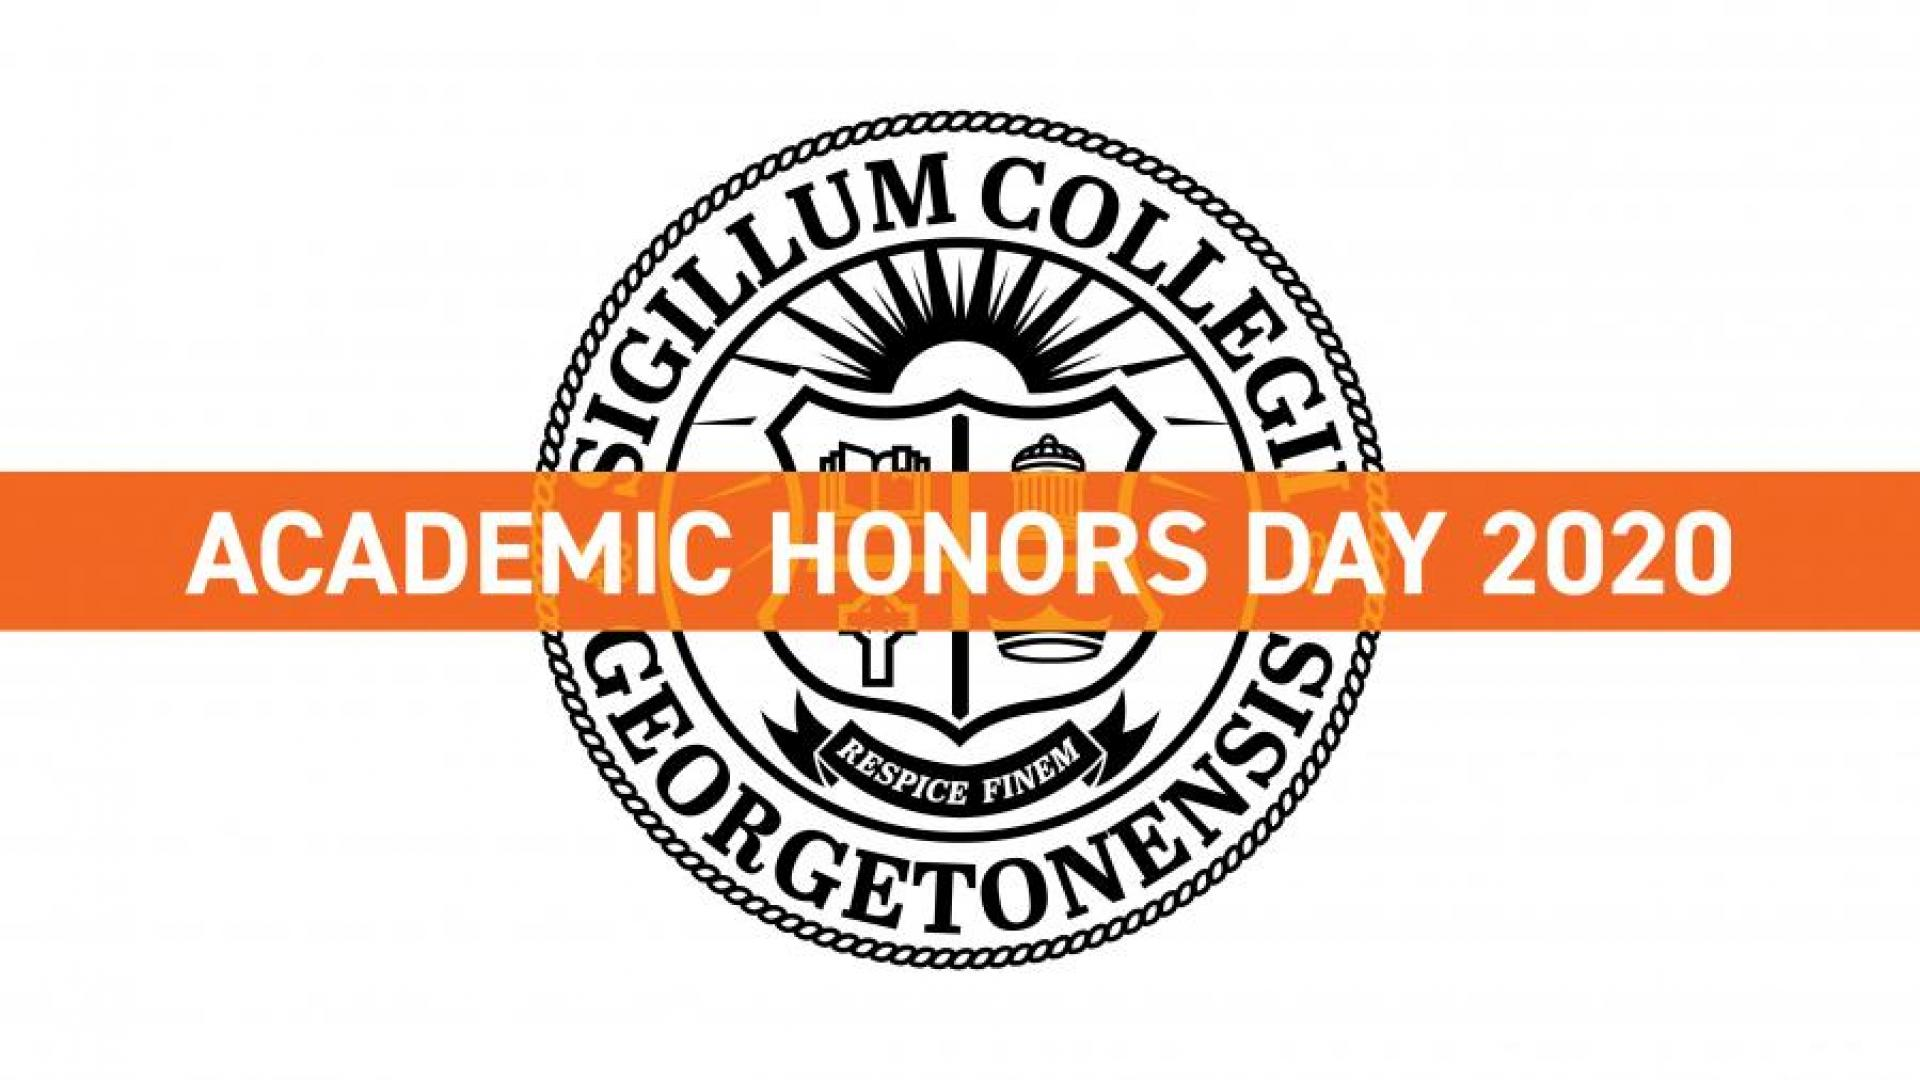 Academic Honors Day